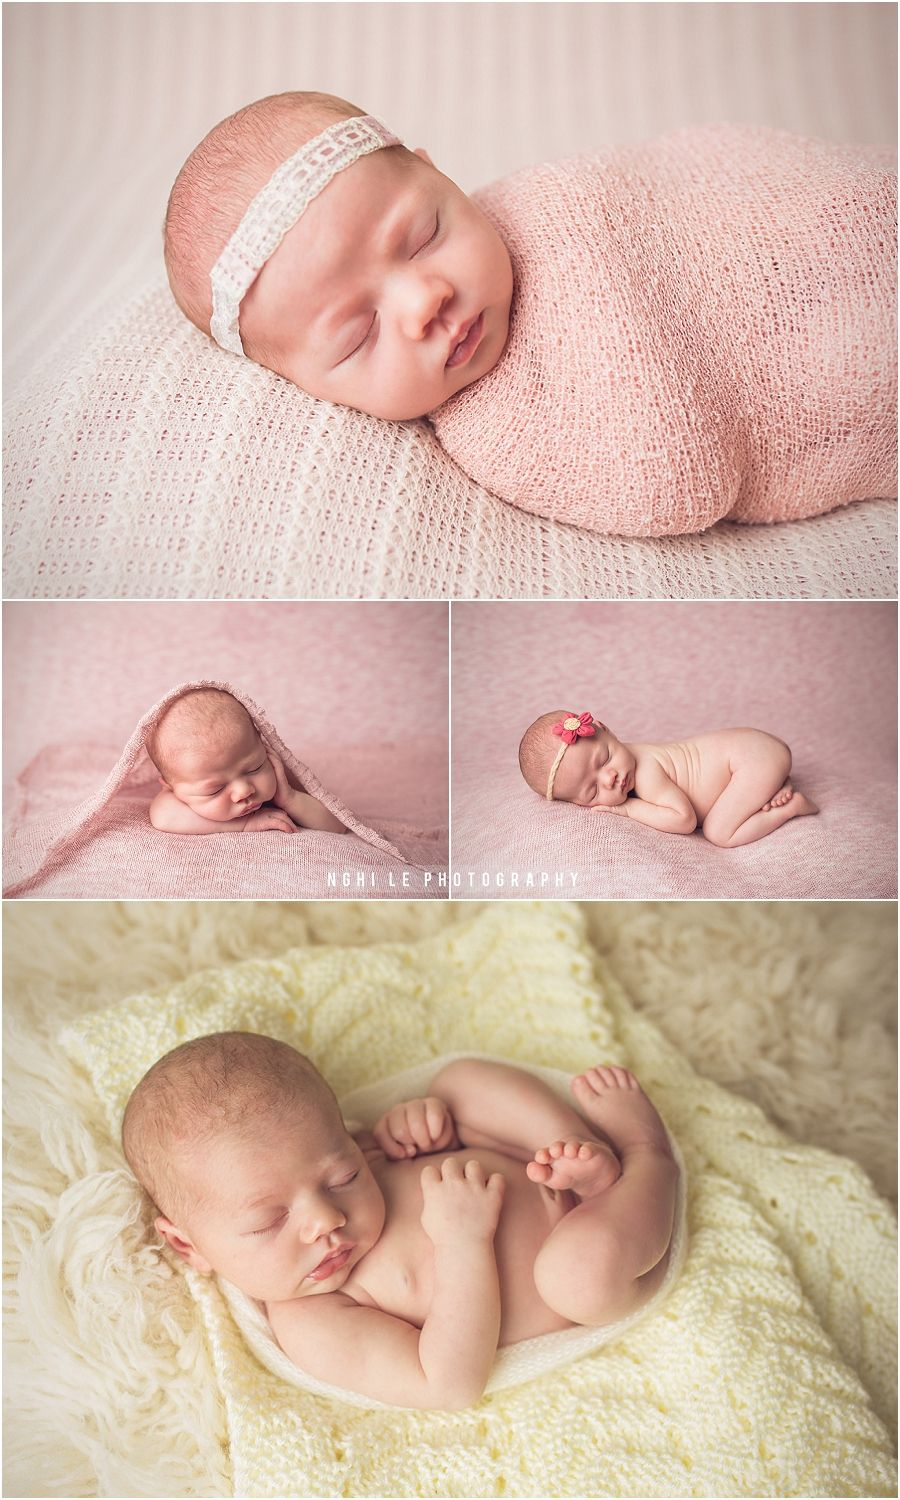 Tampa newborn baby photographer nghi le